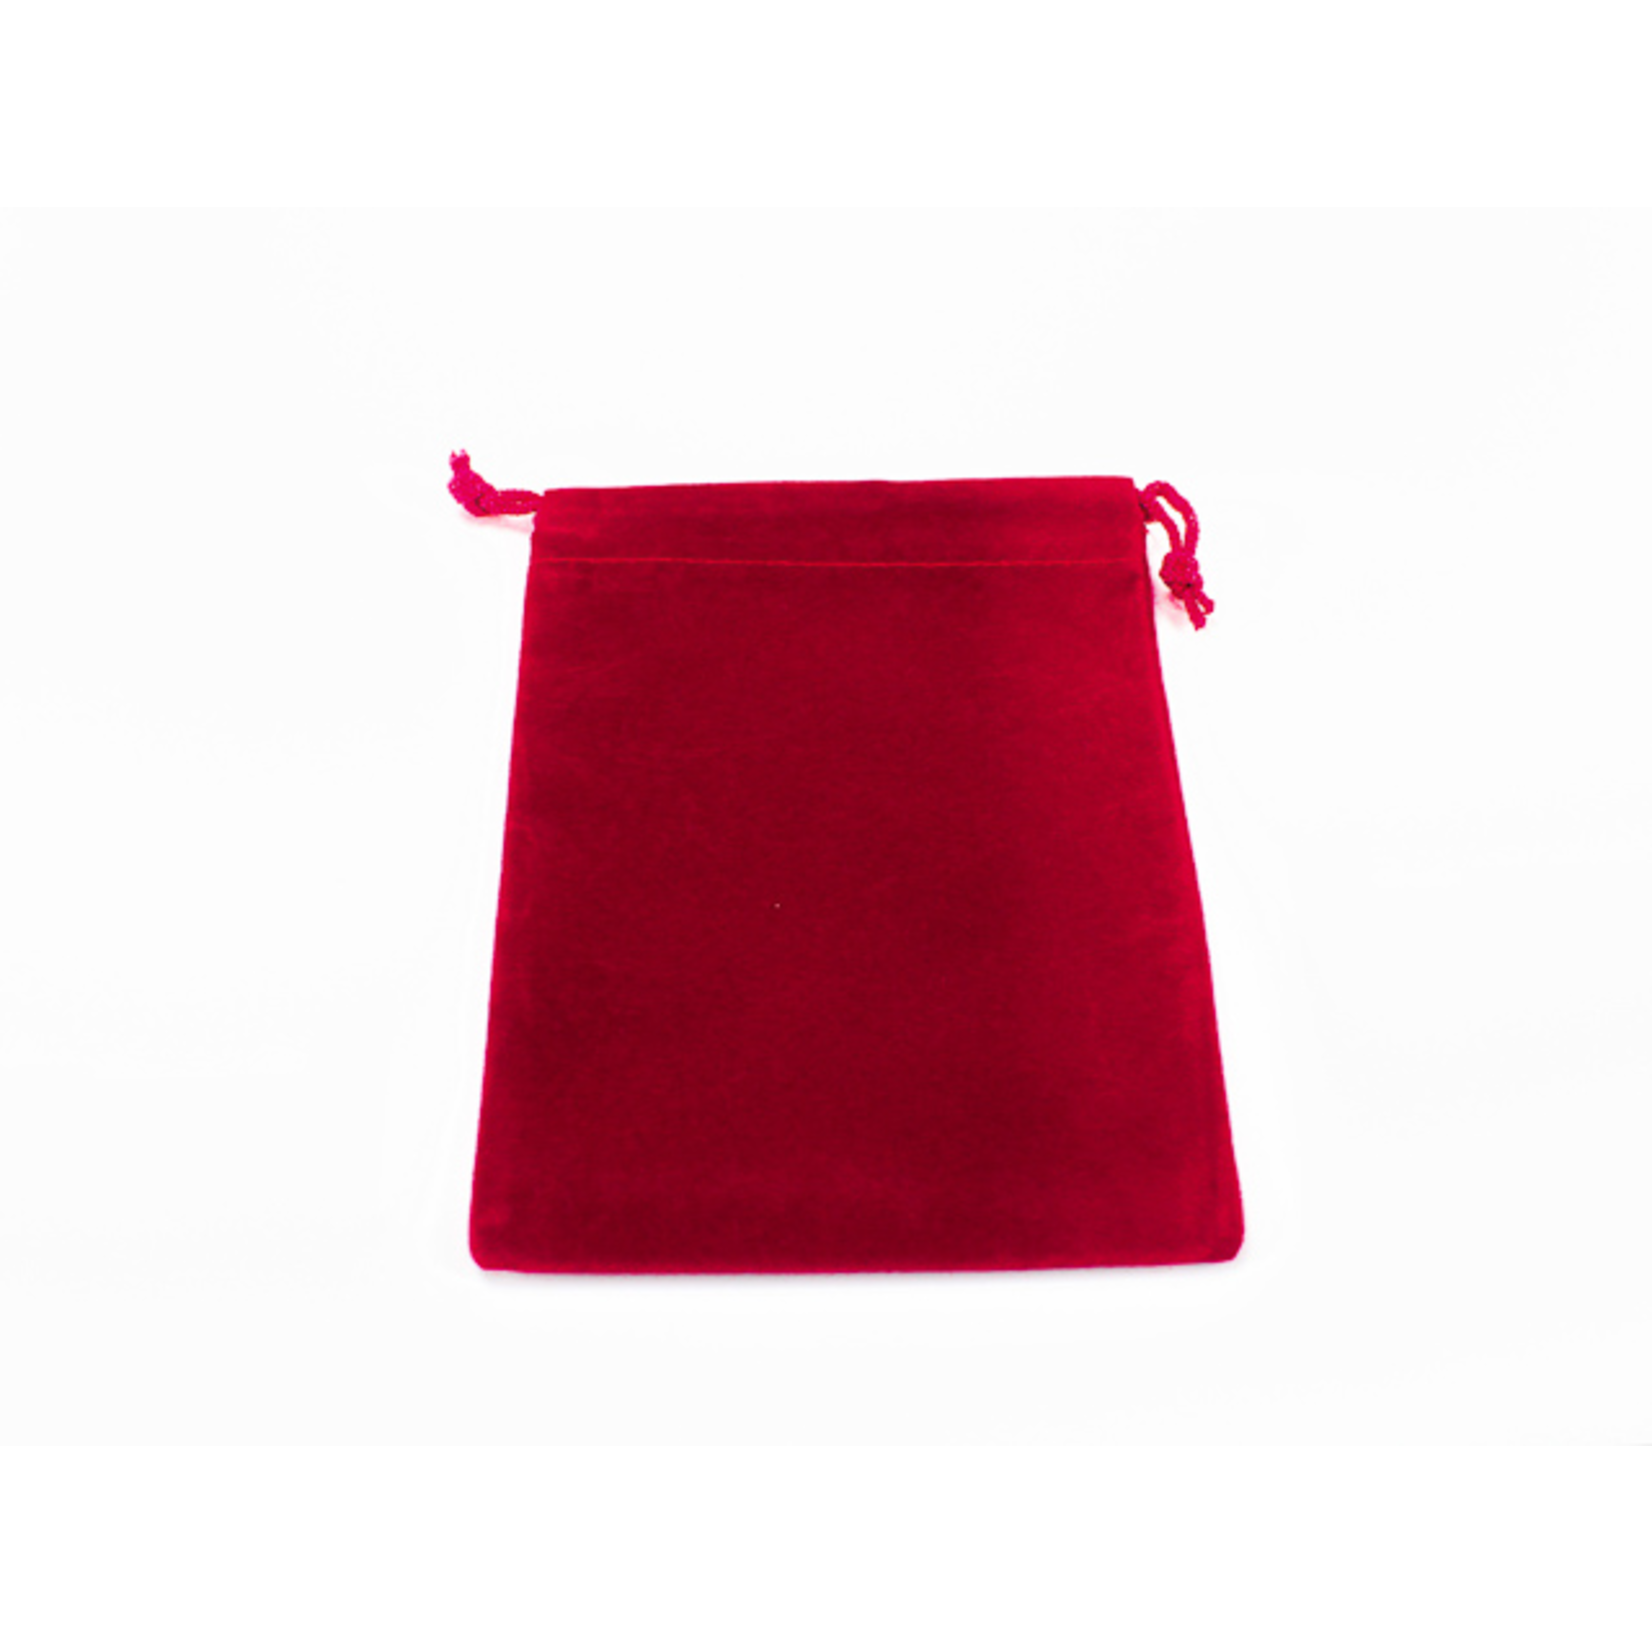 Chessex Dice Bag: Suede Red (Small)